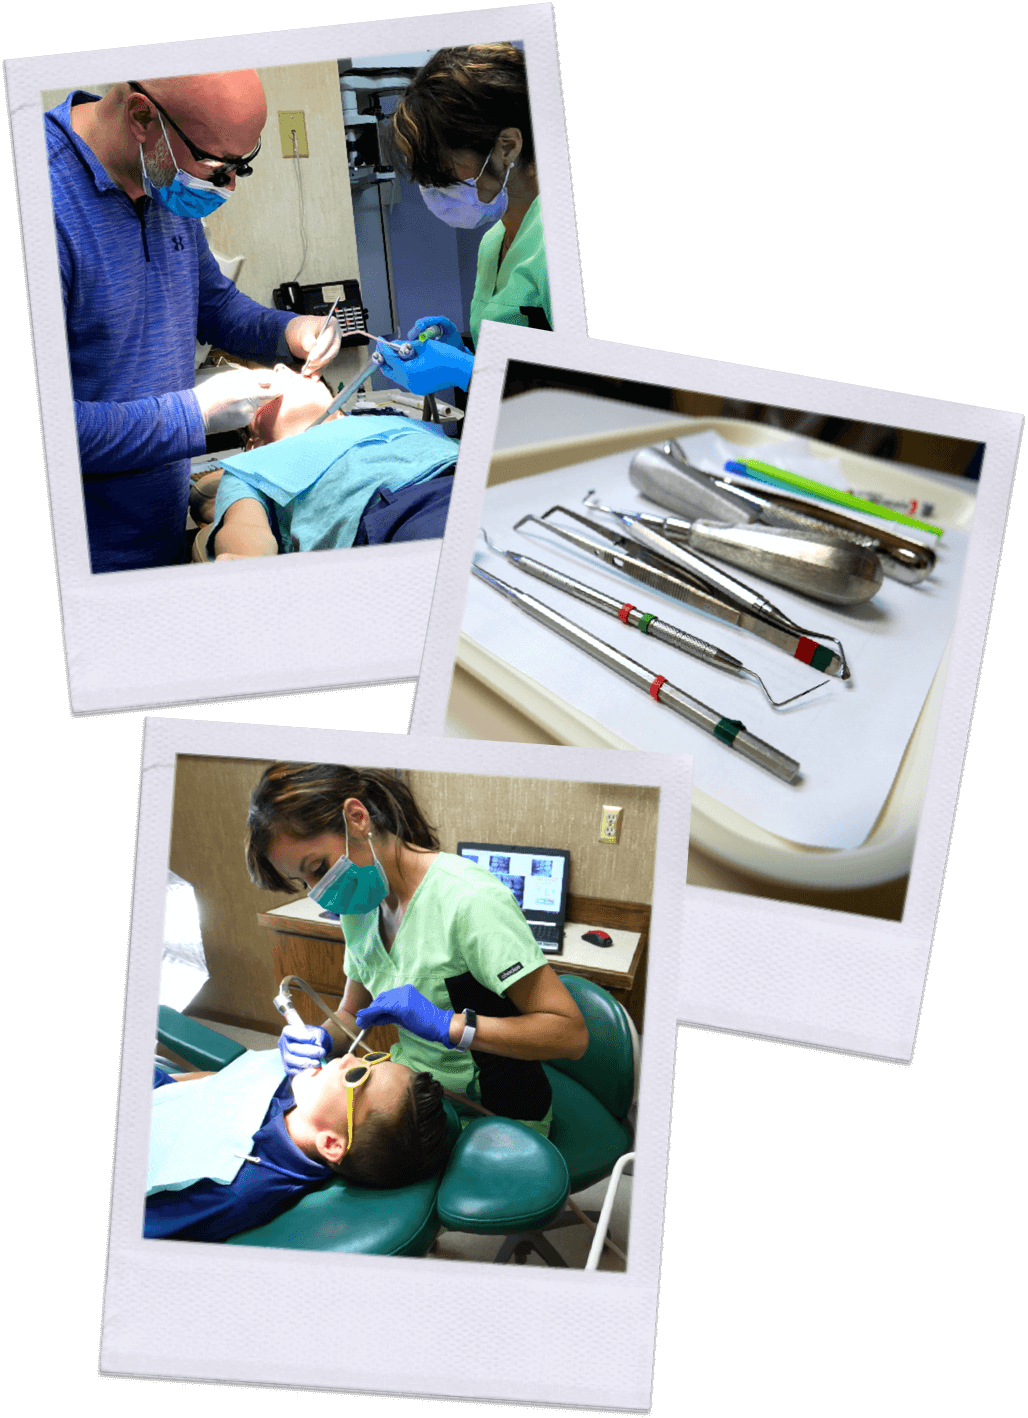 Dental tools, Front end manager, Tessa Davies and young boy getting teeth cleaned by Andrea Blanco, Dental assistant. and Dr. Coon